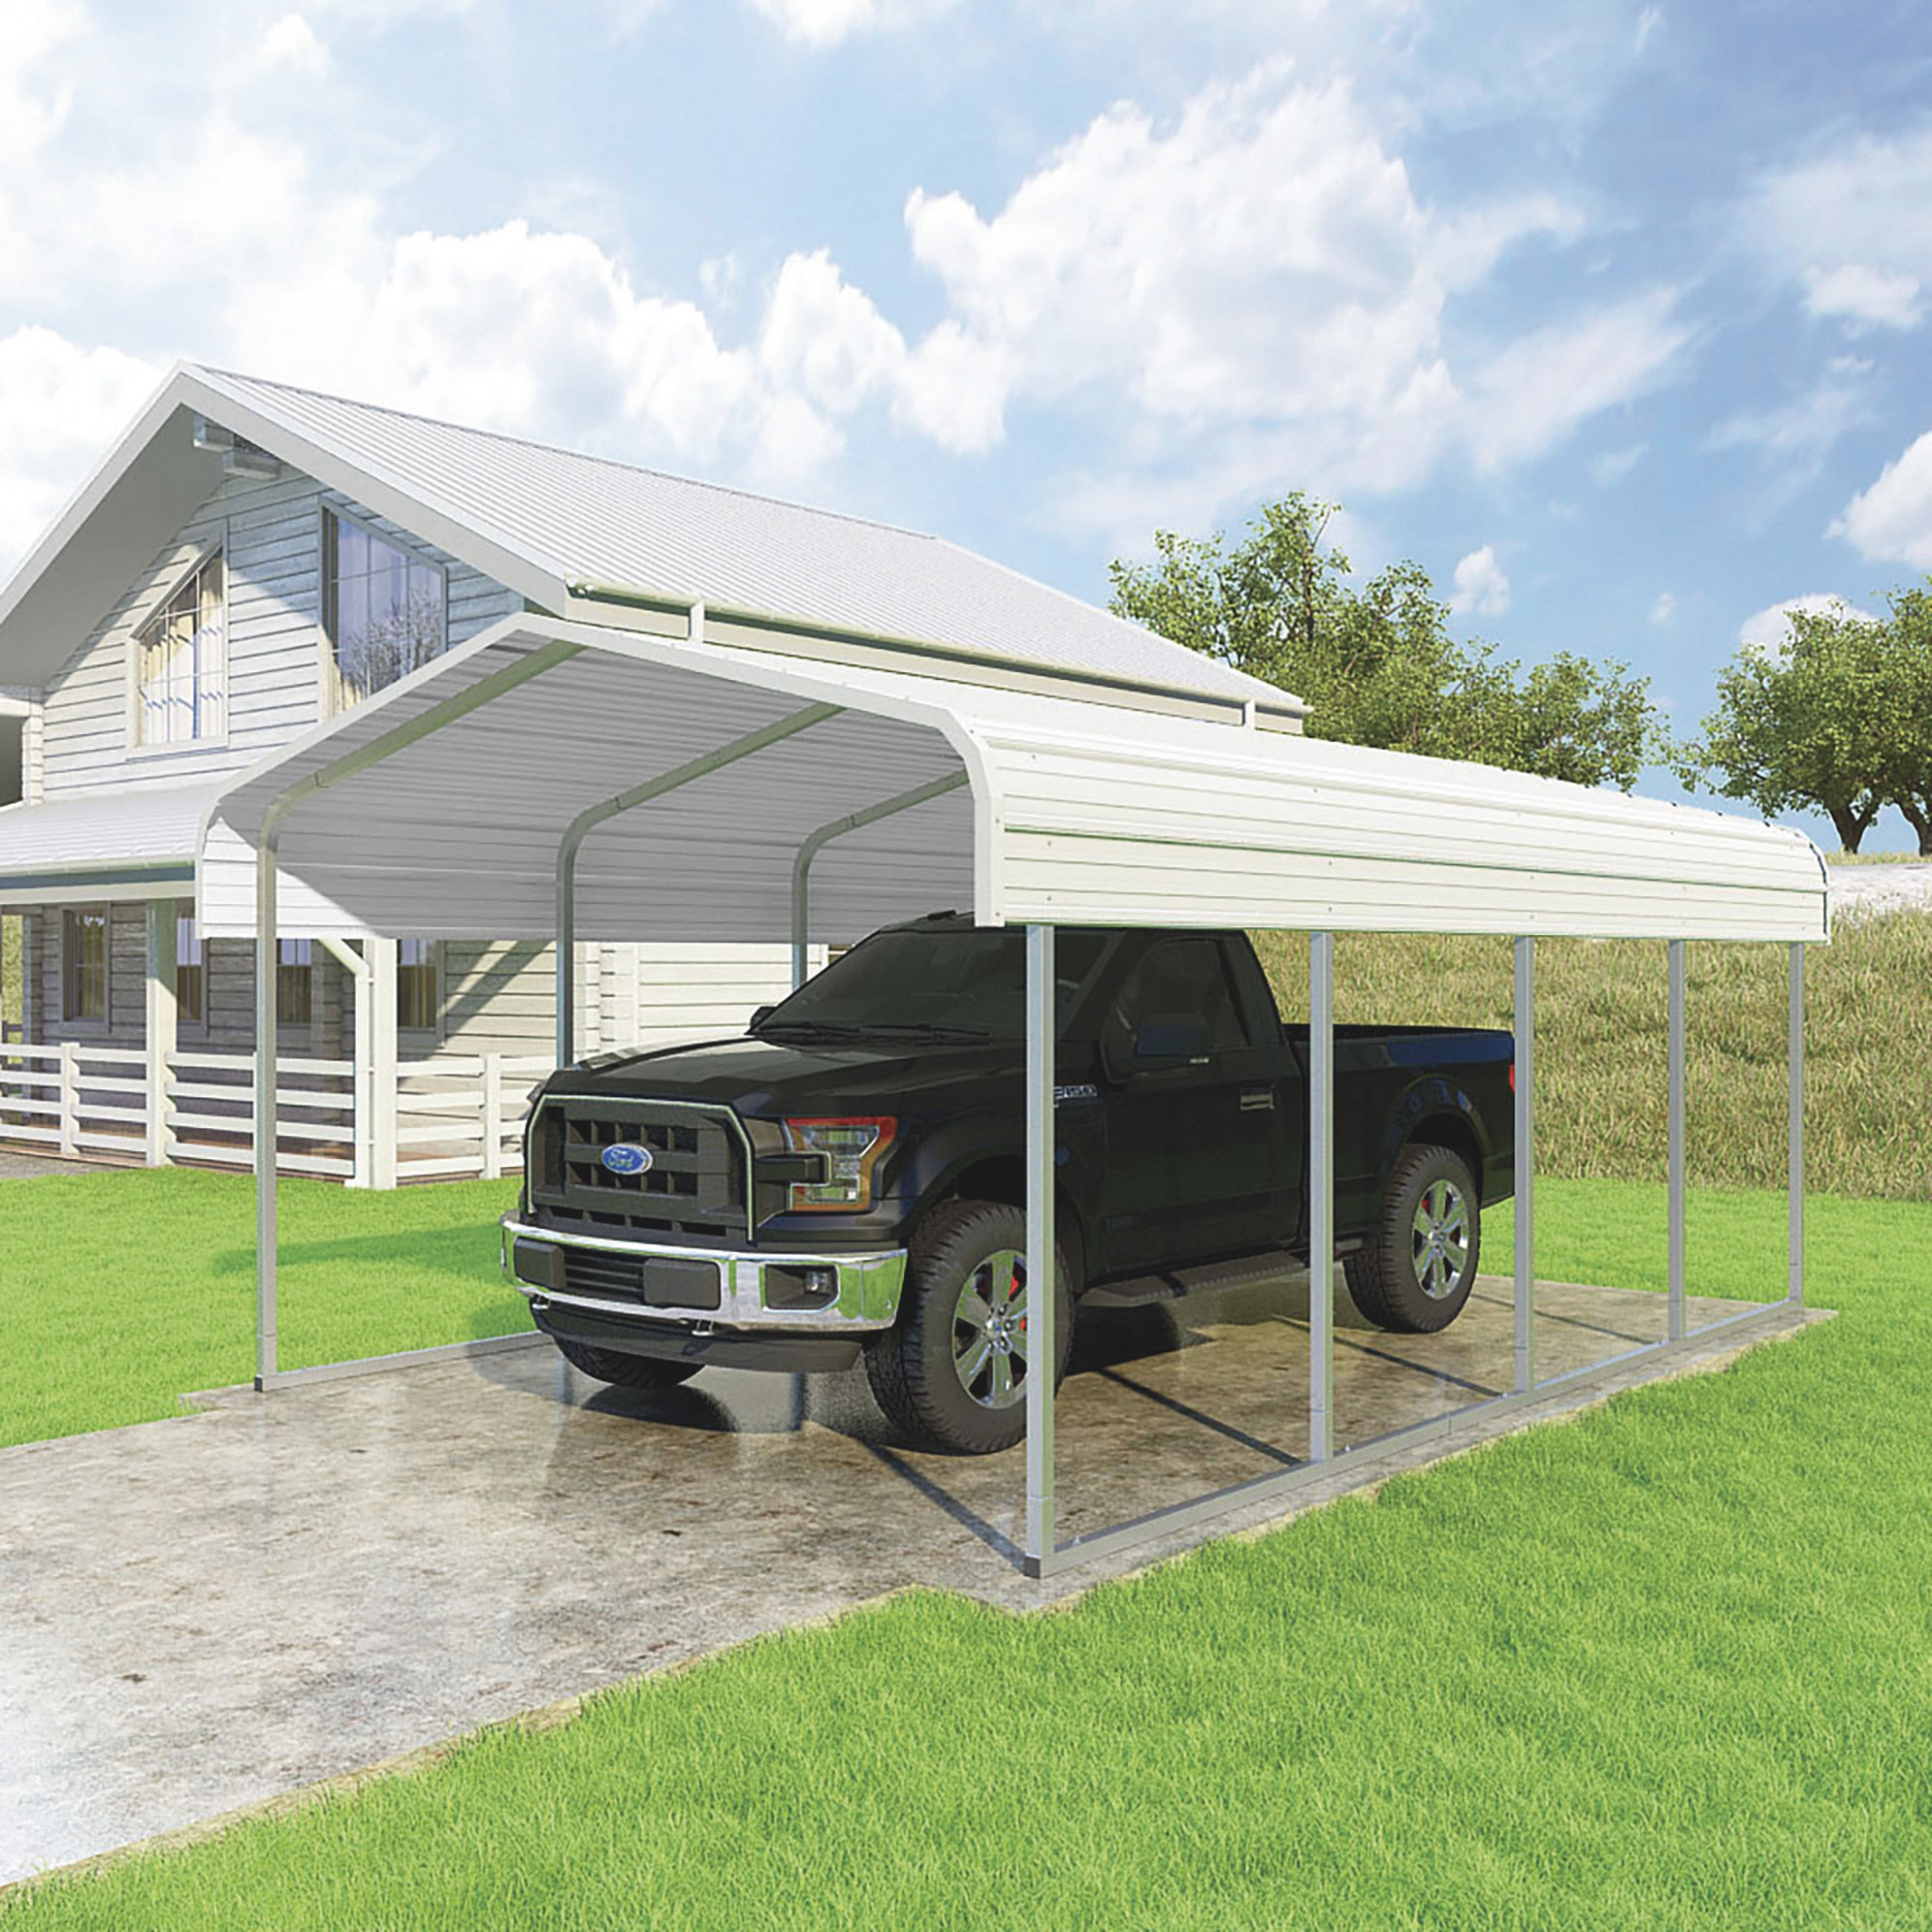 Metal Carports | Northern Tool + Equipment Metal Carport Canopy For Sale